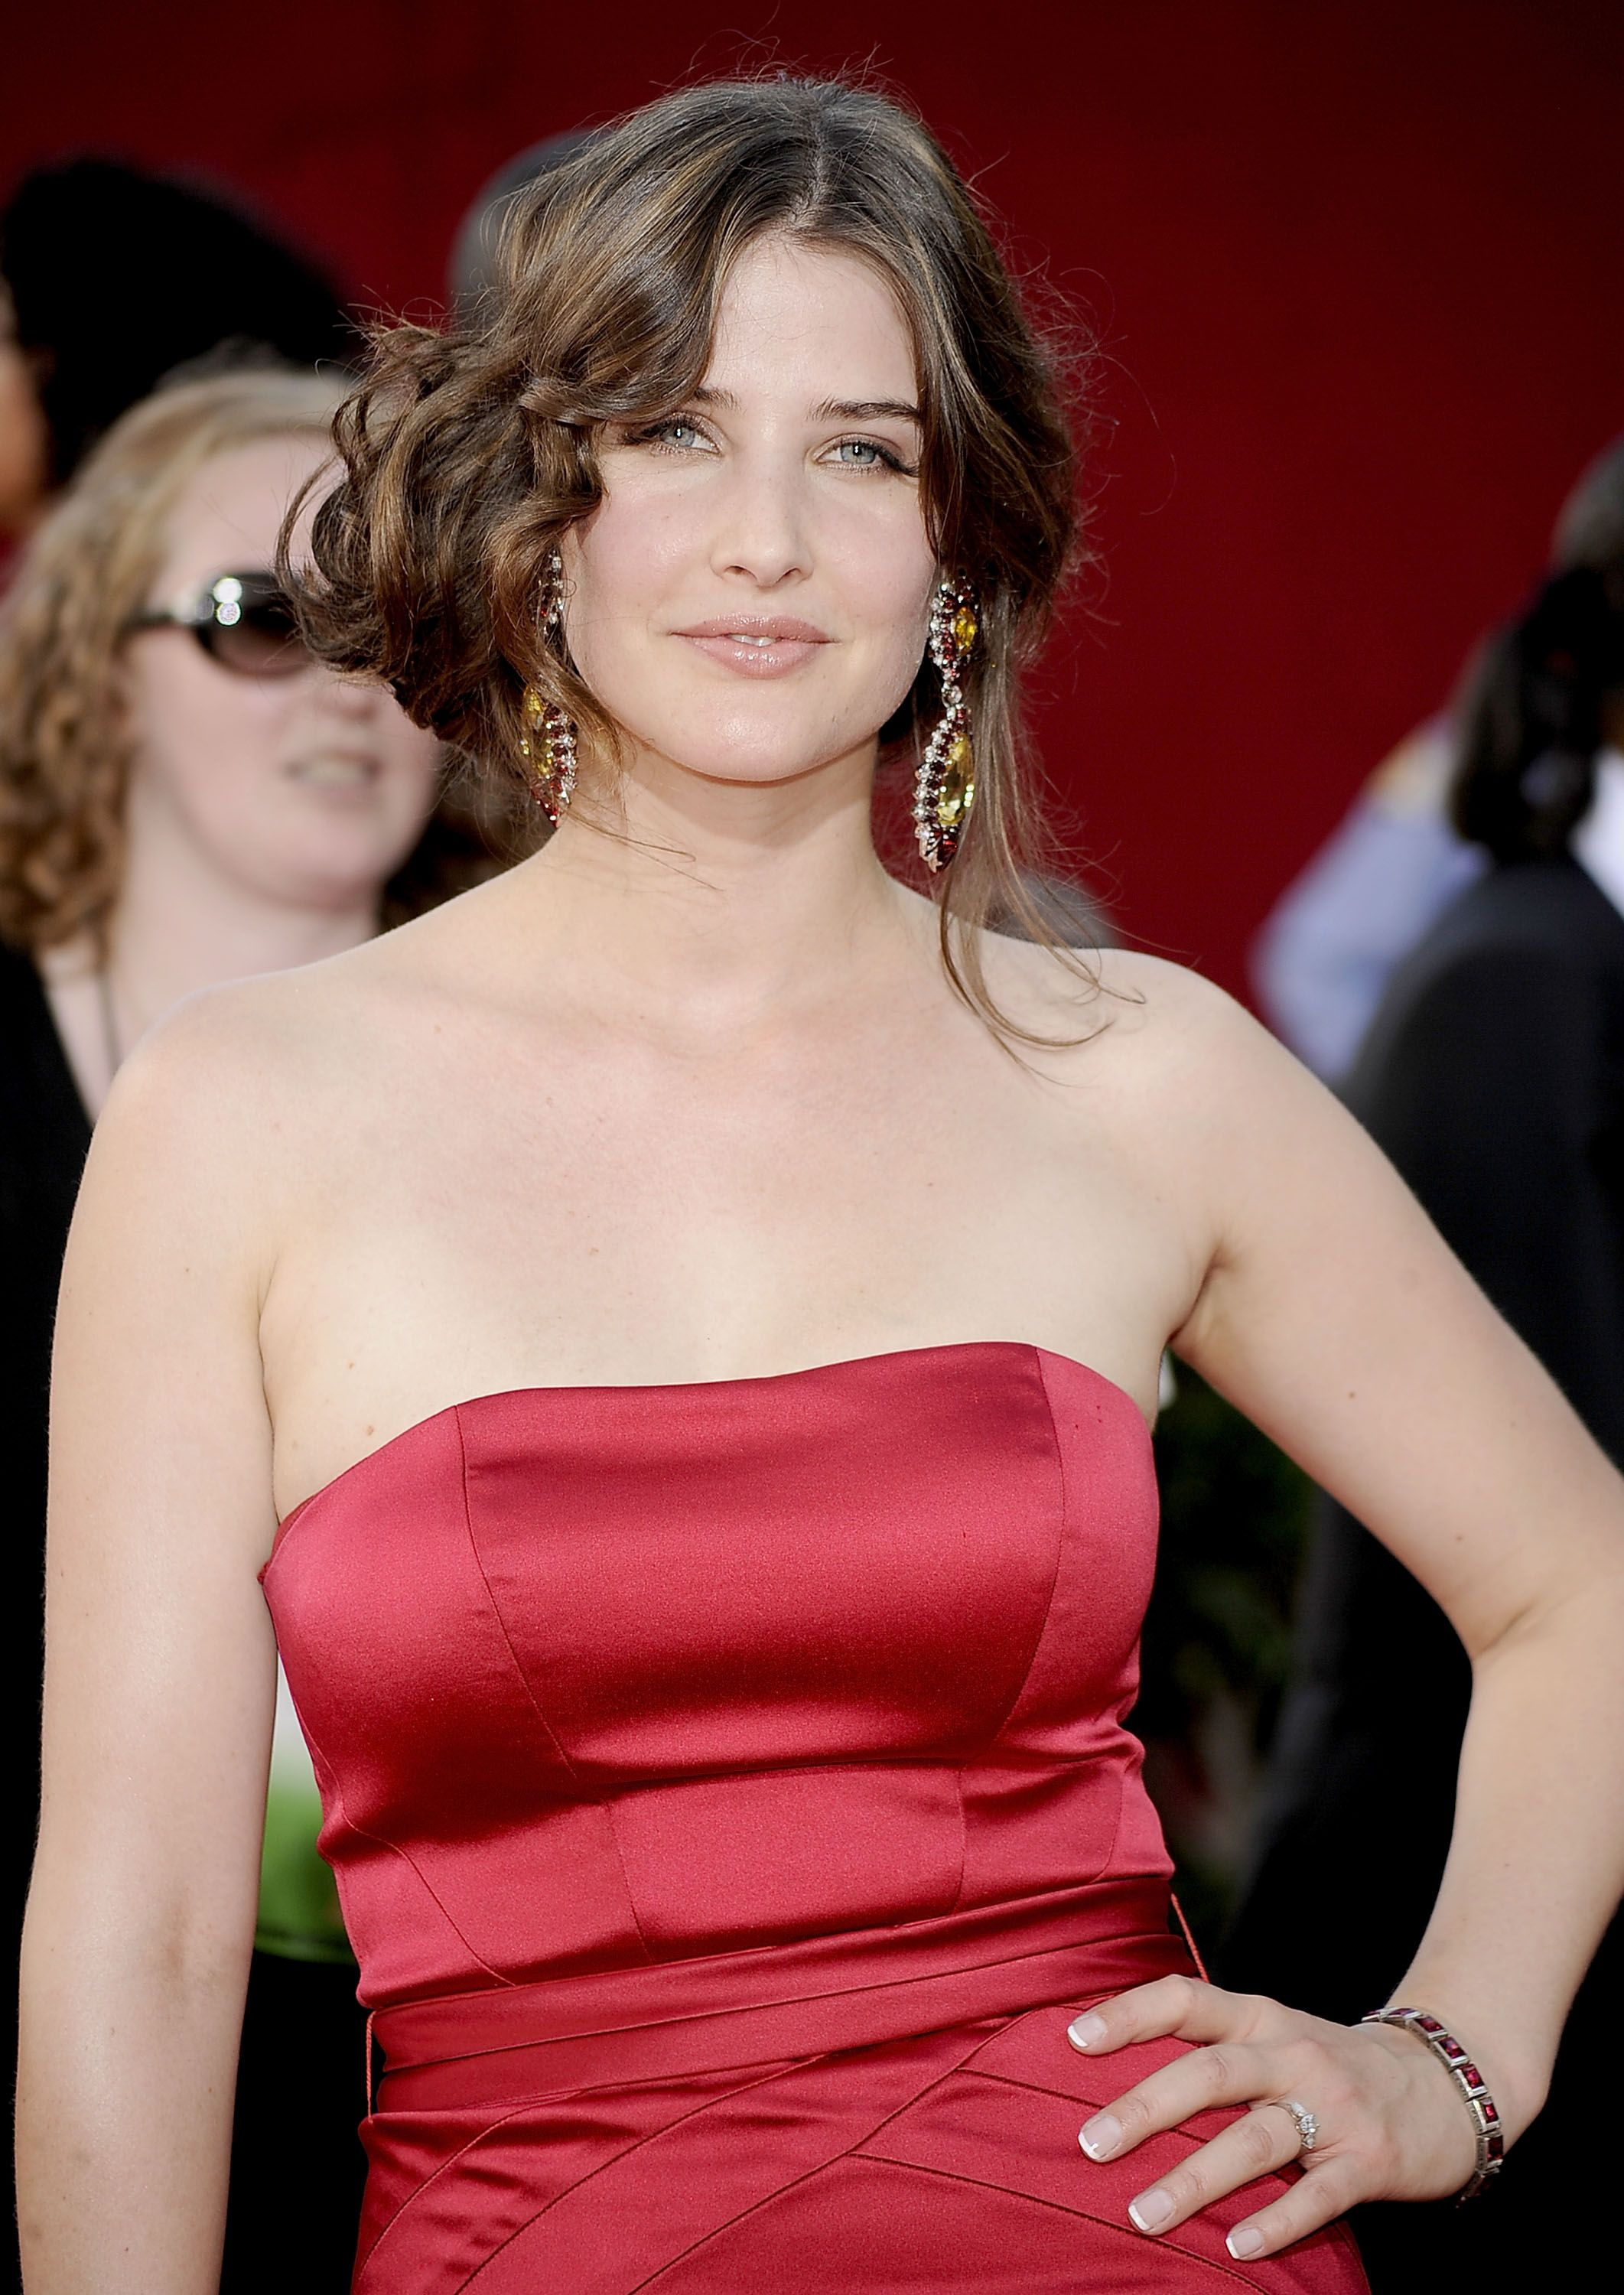 Snapchat Cobie Smulders naked (71 foto and video), Topless, Paparazzi, Feet, in bikini 2019